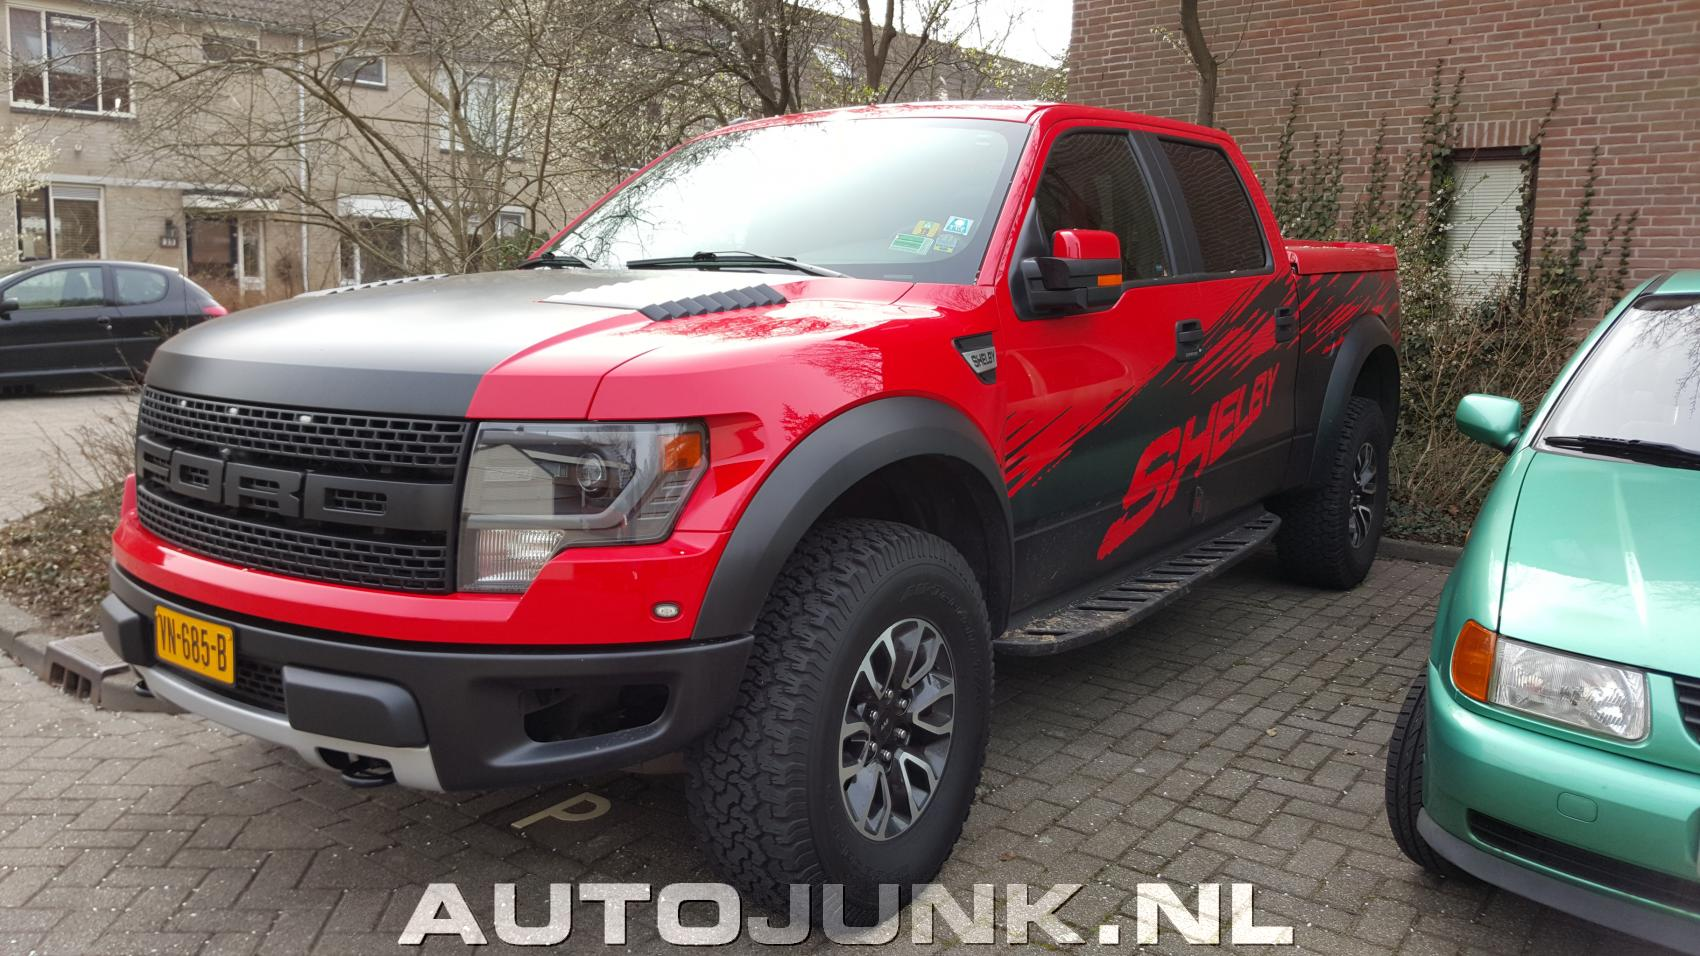 Ford F-150 Raptor SHELBY foto's » Autojunk.nl (165647)